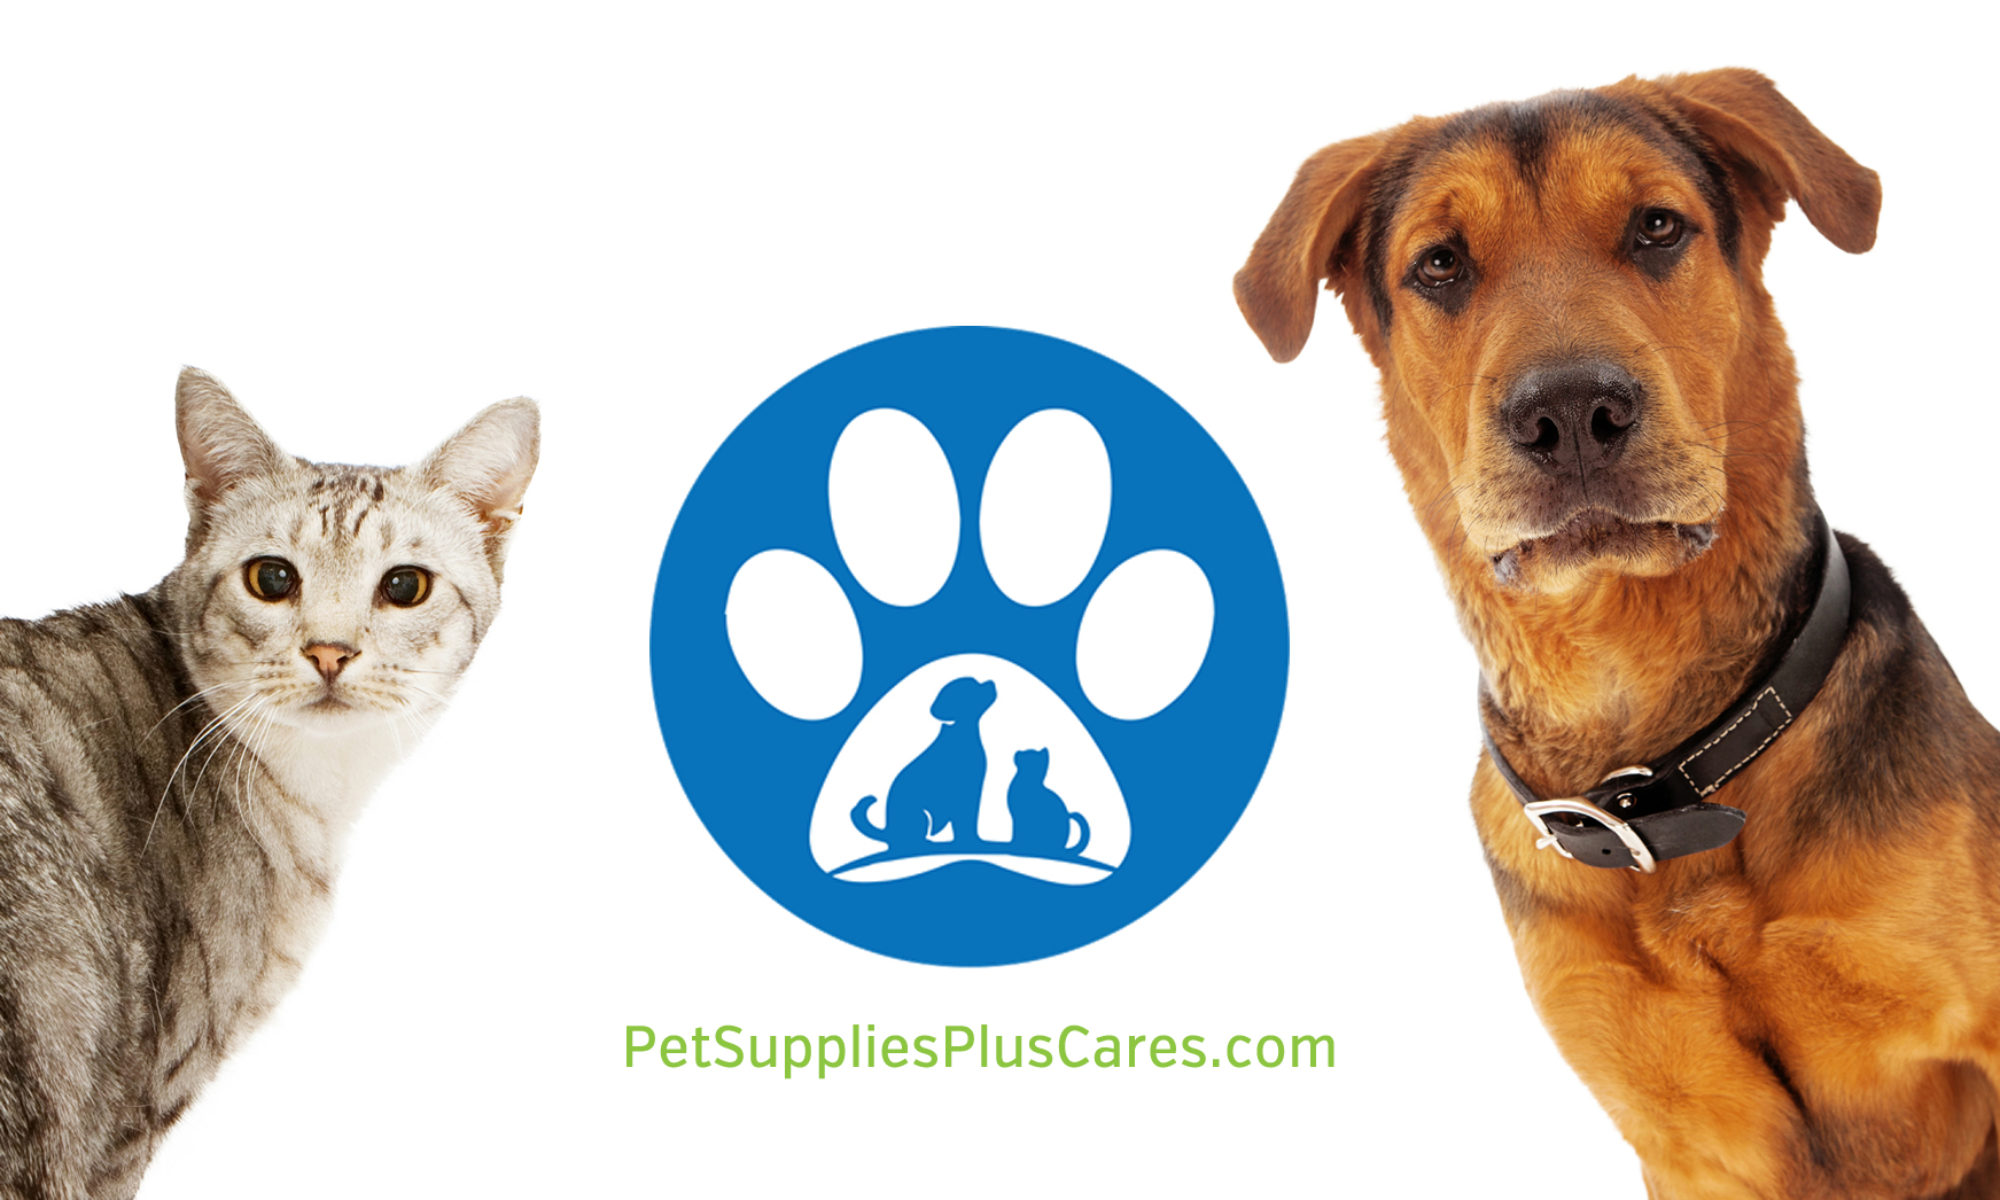 Pet Supplies Plus Cares